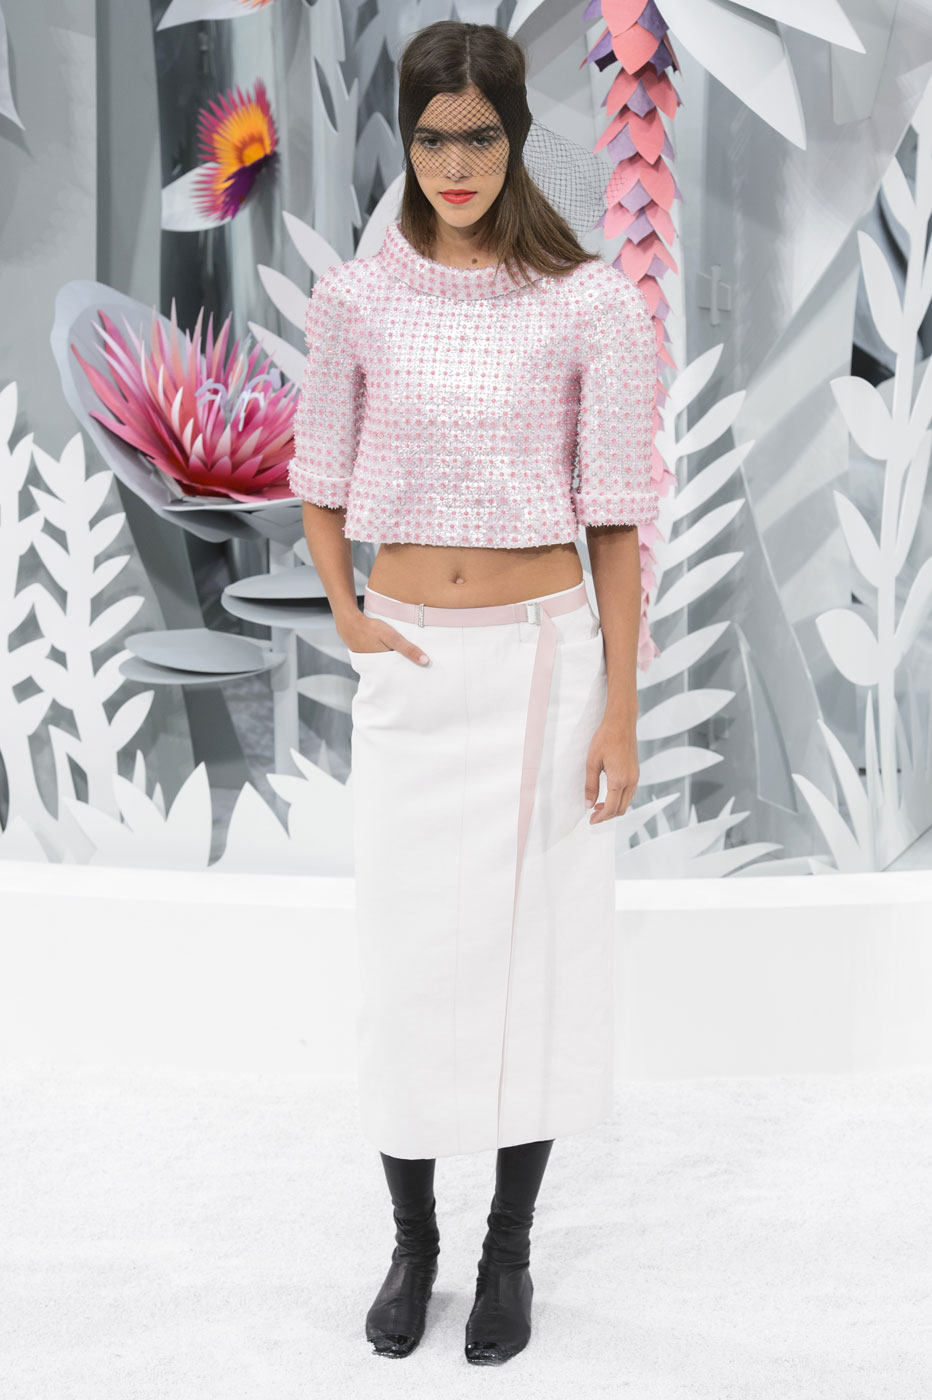 Chanel-fashion-runway-show-haute-couture-paris-spring-summer-2015-the-impression-125